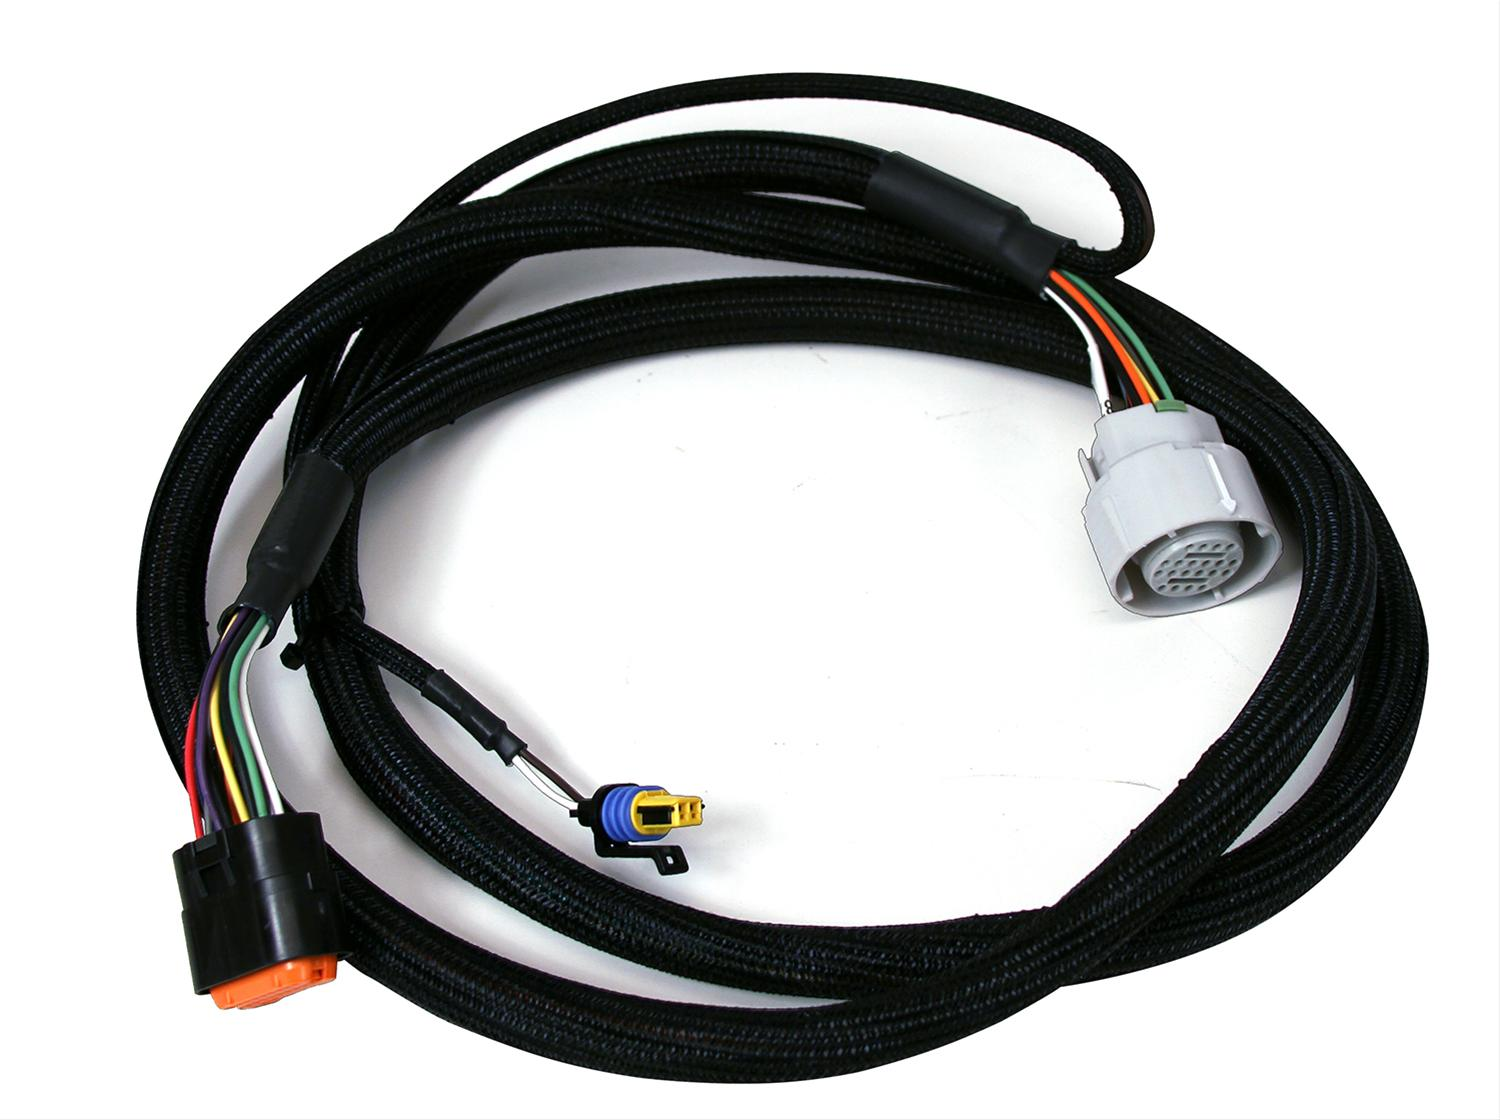 hight resolution of msd atomic transmission control module harnesses 2770 free shipping on orders over 99 at summit racing